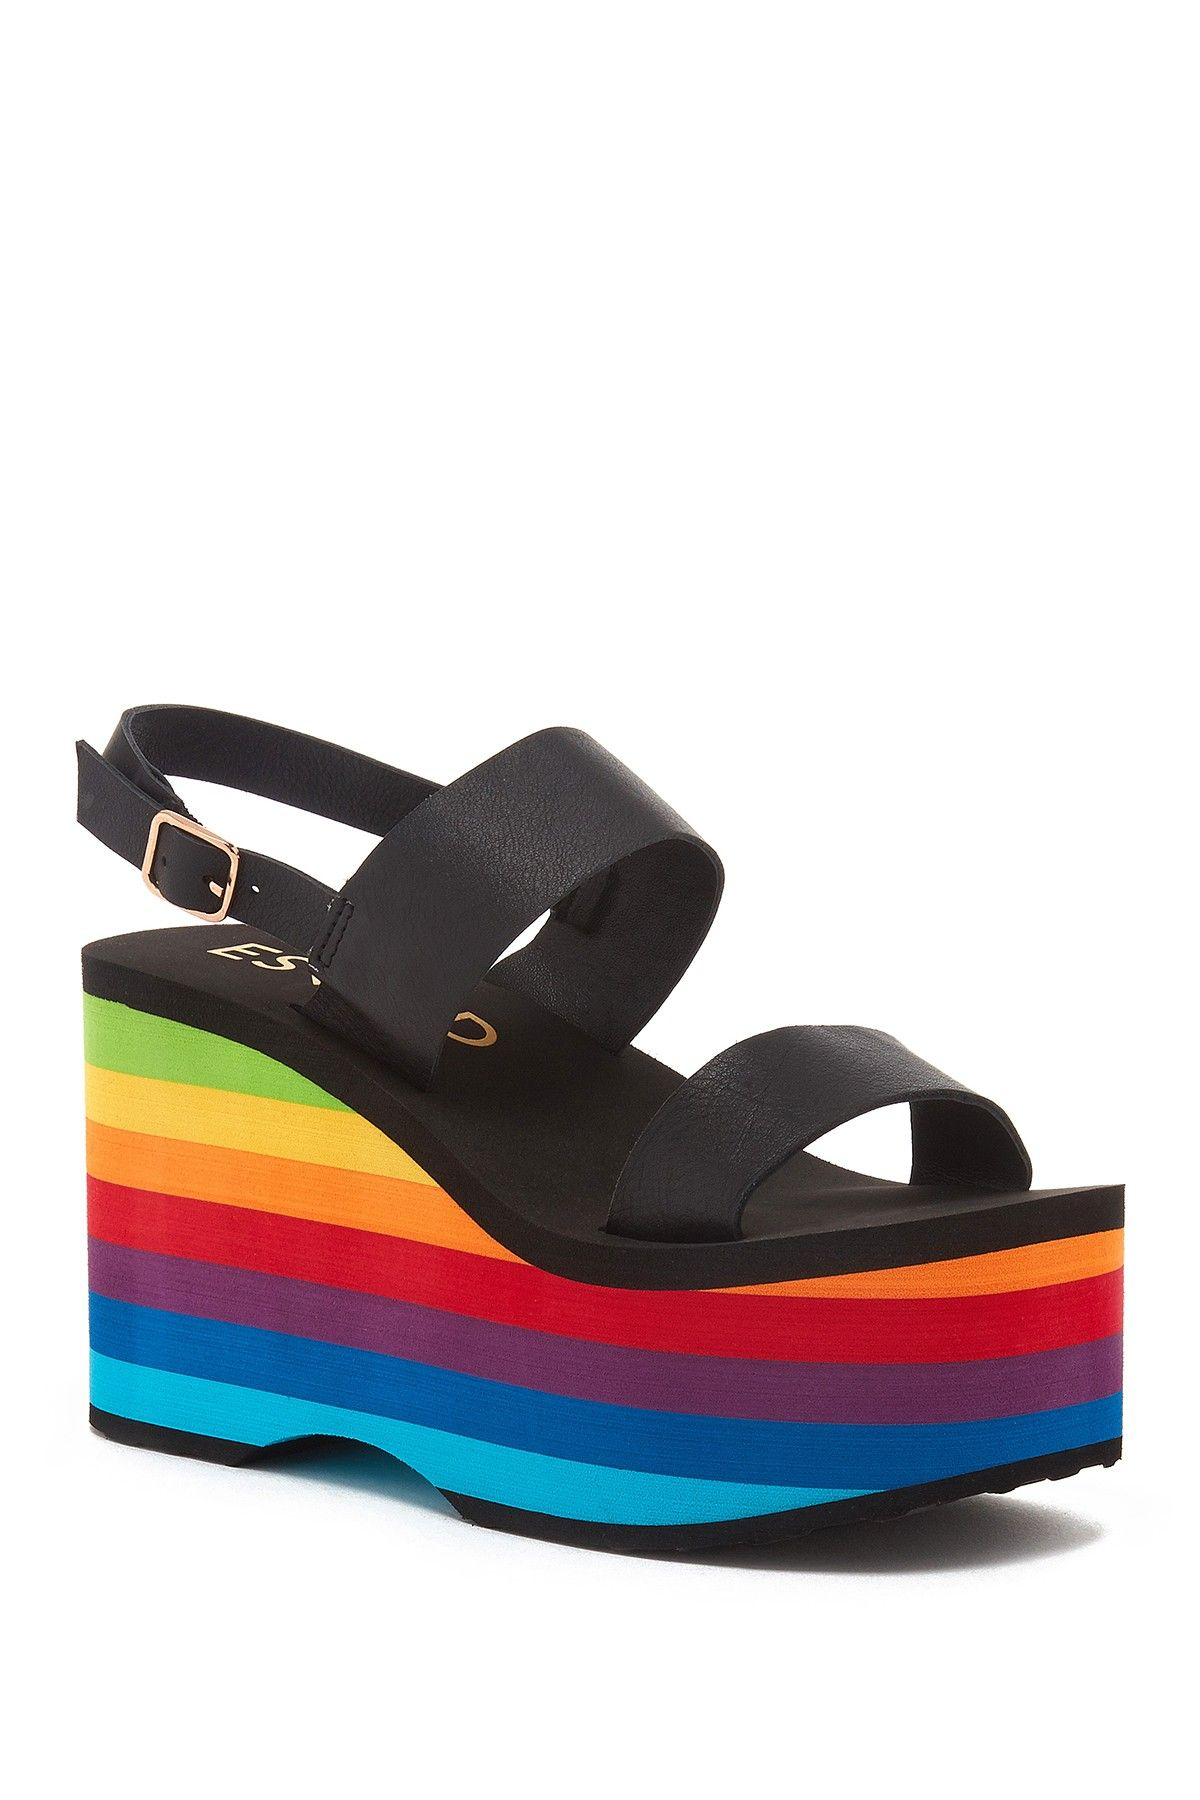 62ba39d8412 Rocket Dog - Copa Rainbow Sandals is now 59% off. Free Shipping on orders  over  100.